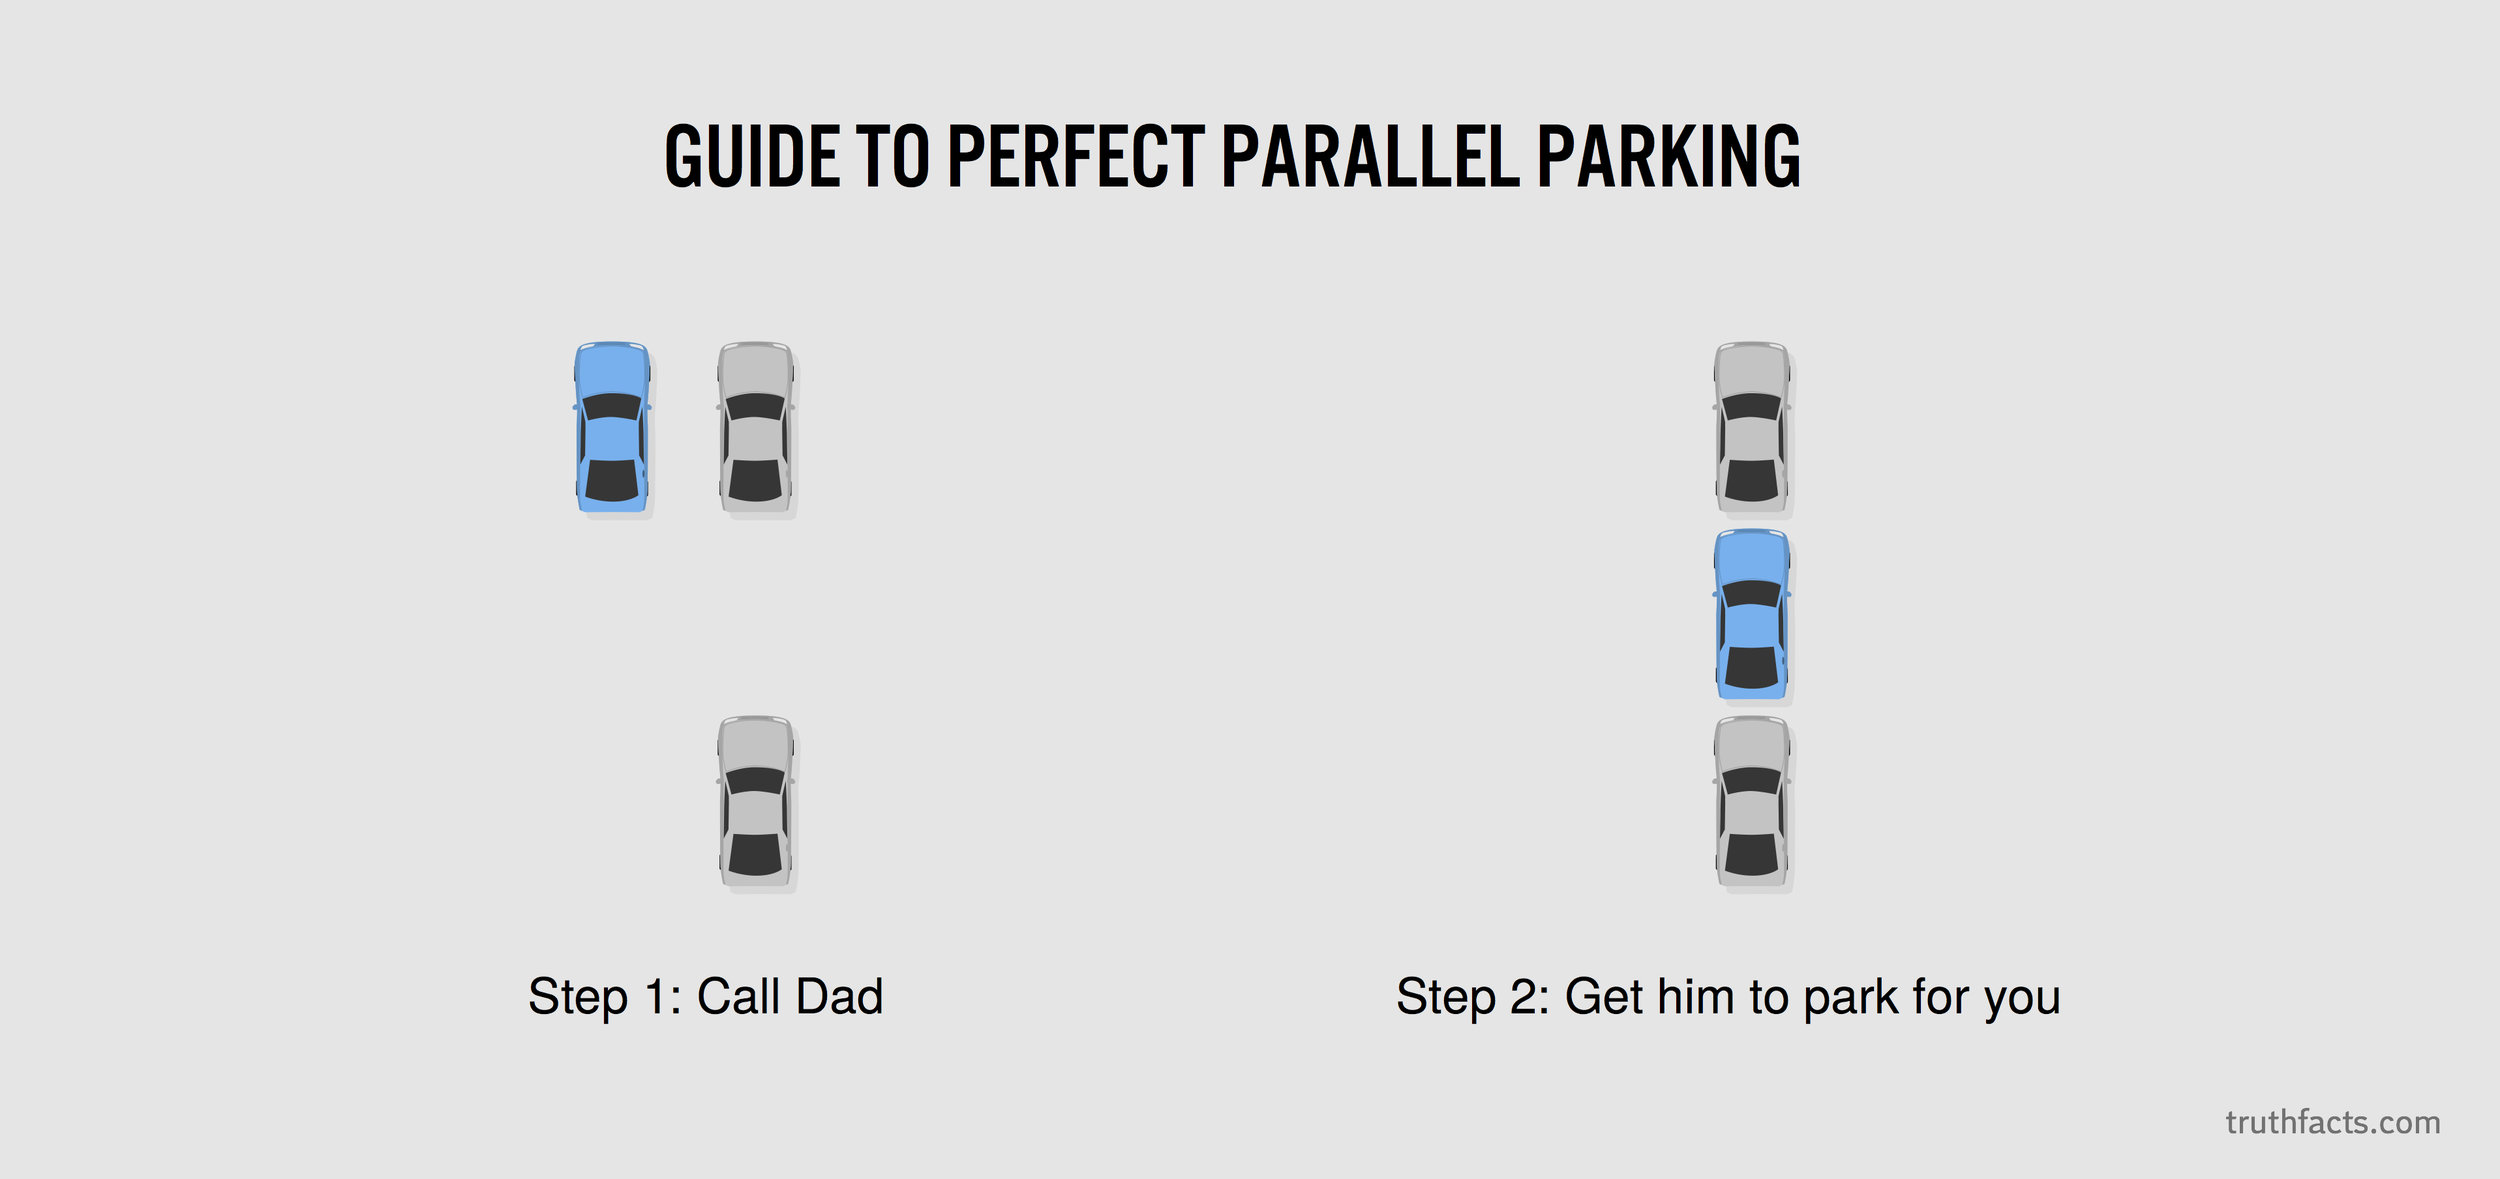 Guide to perfect parallel parking